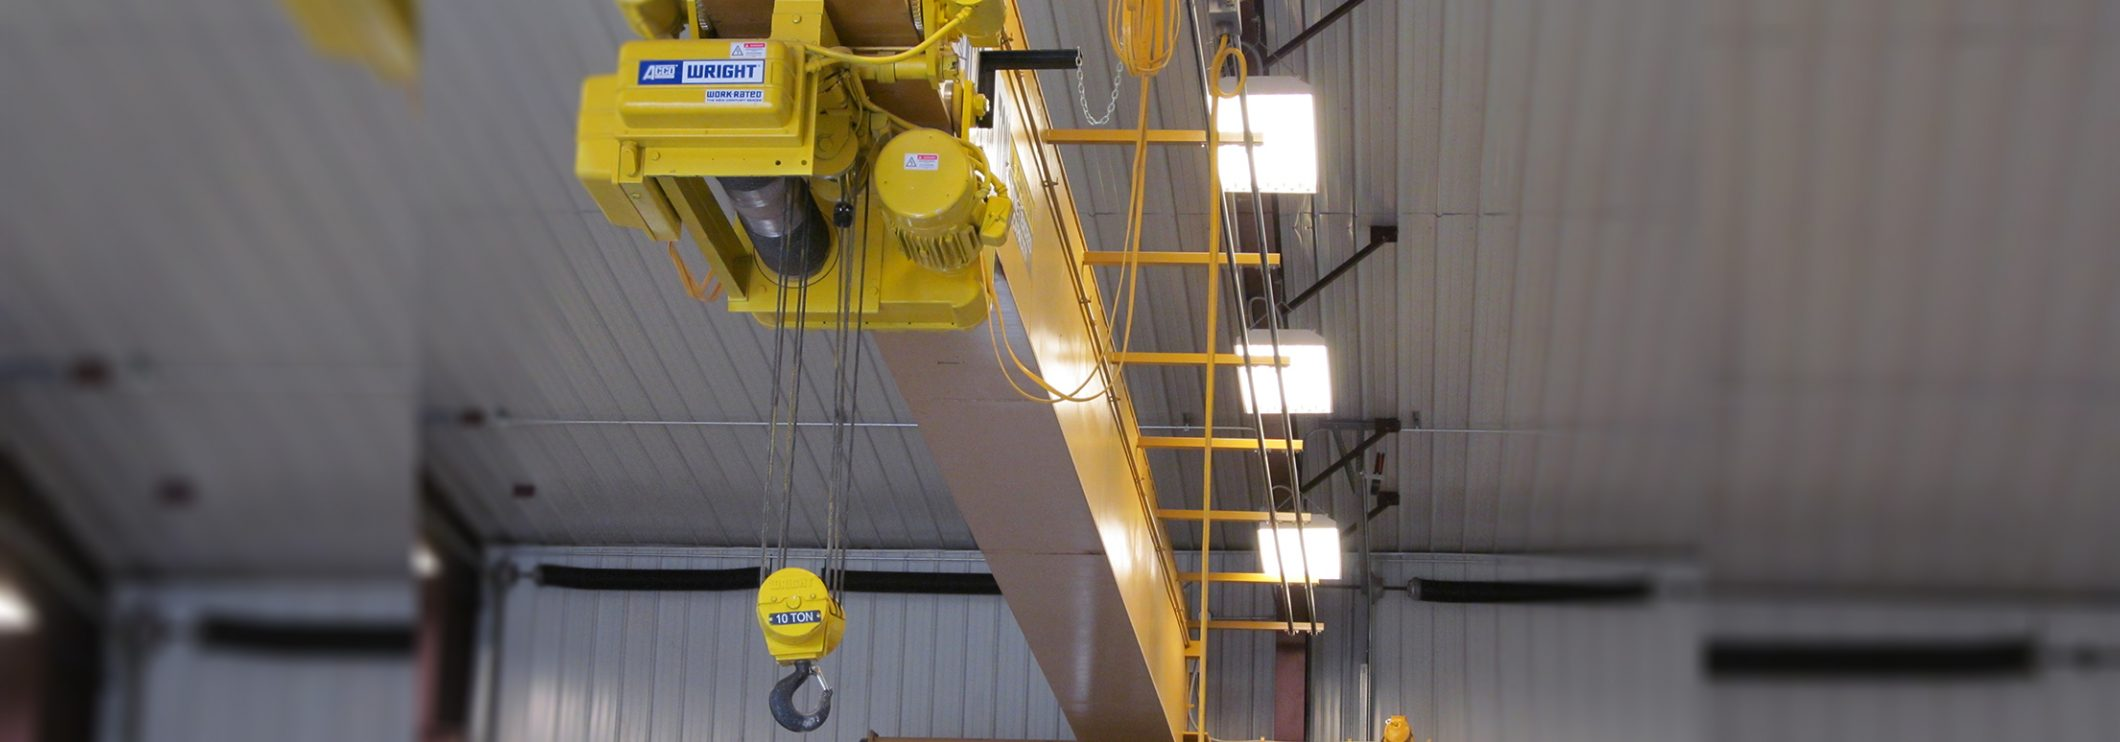 ACCO Hoists in Warehouse